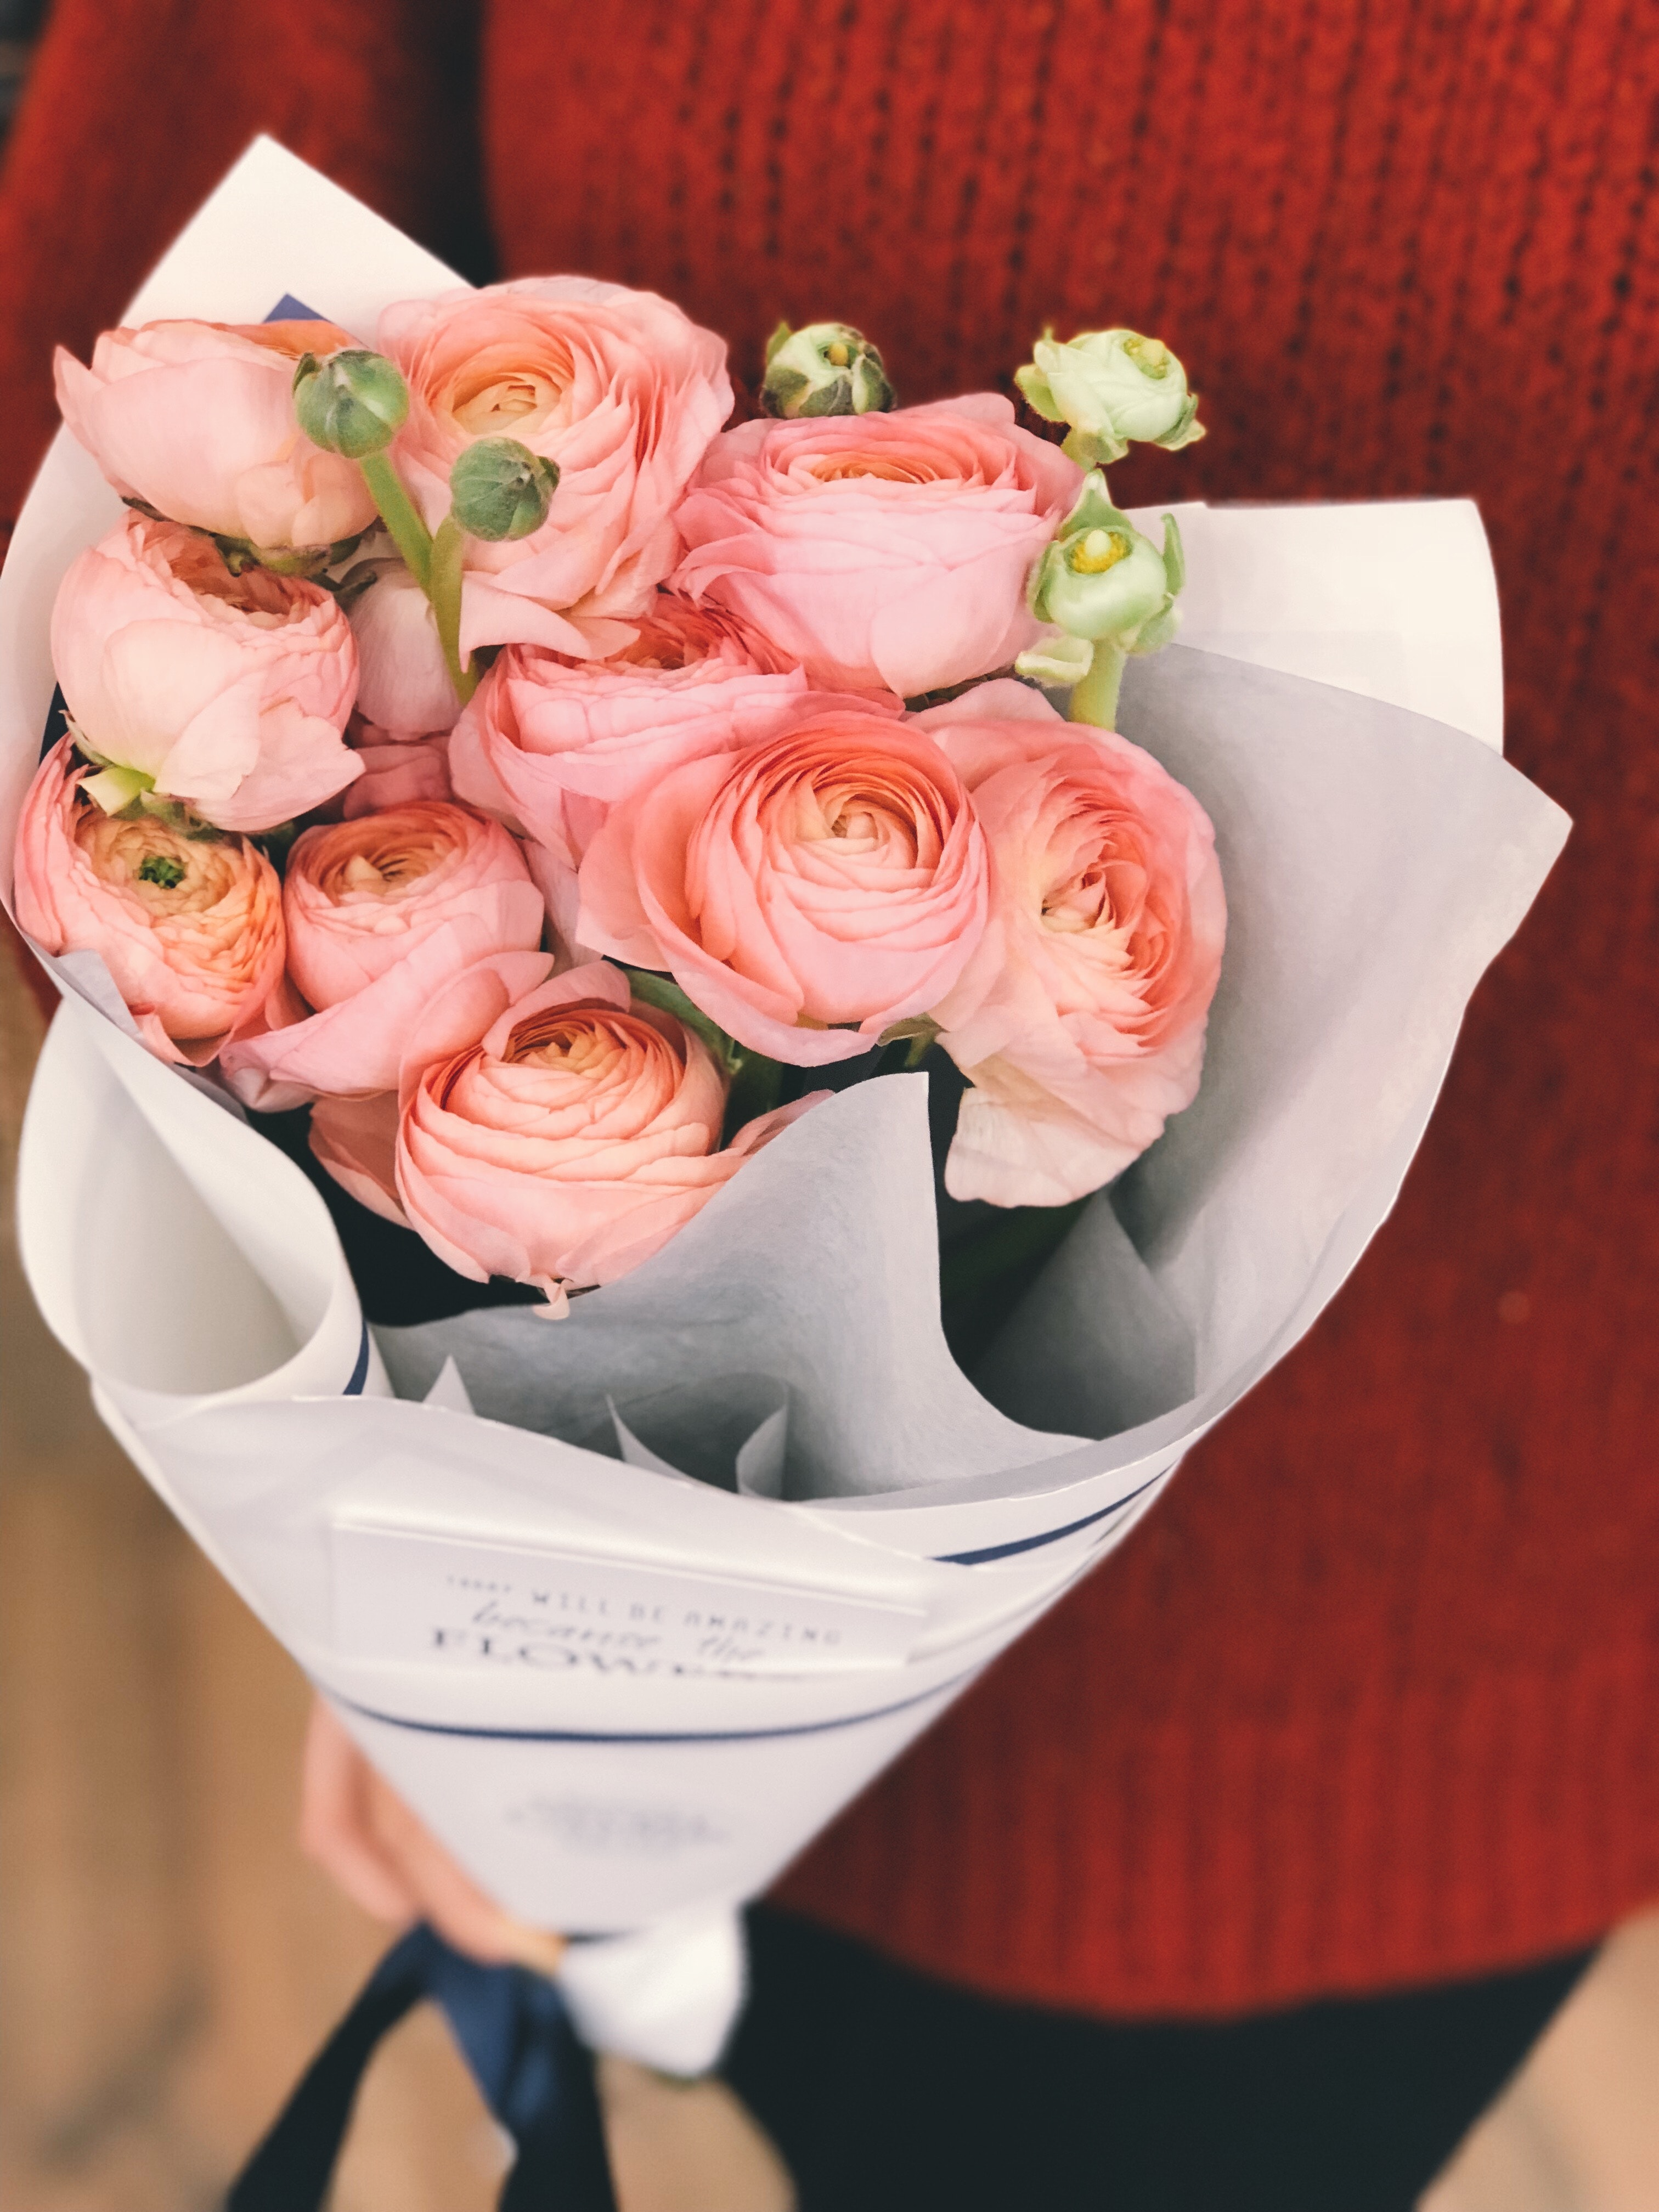 Person Wearing Red Sweater and Black Pants Holding Bouquet of Pink ...